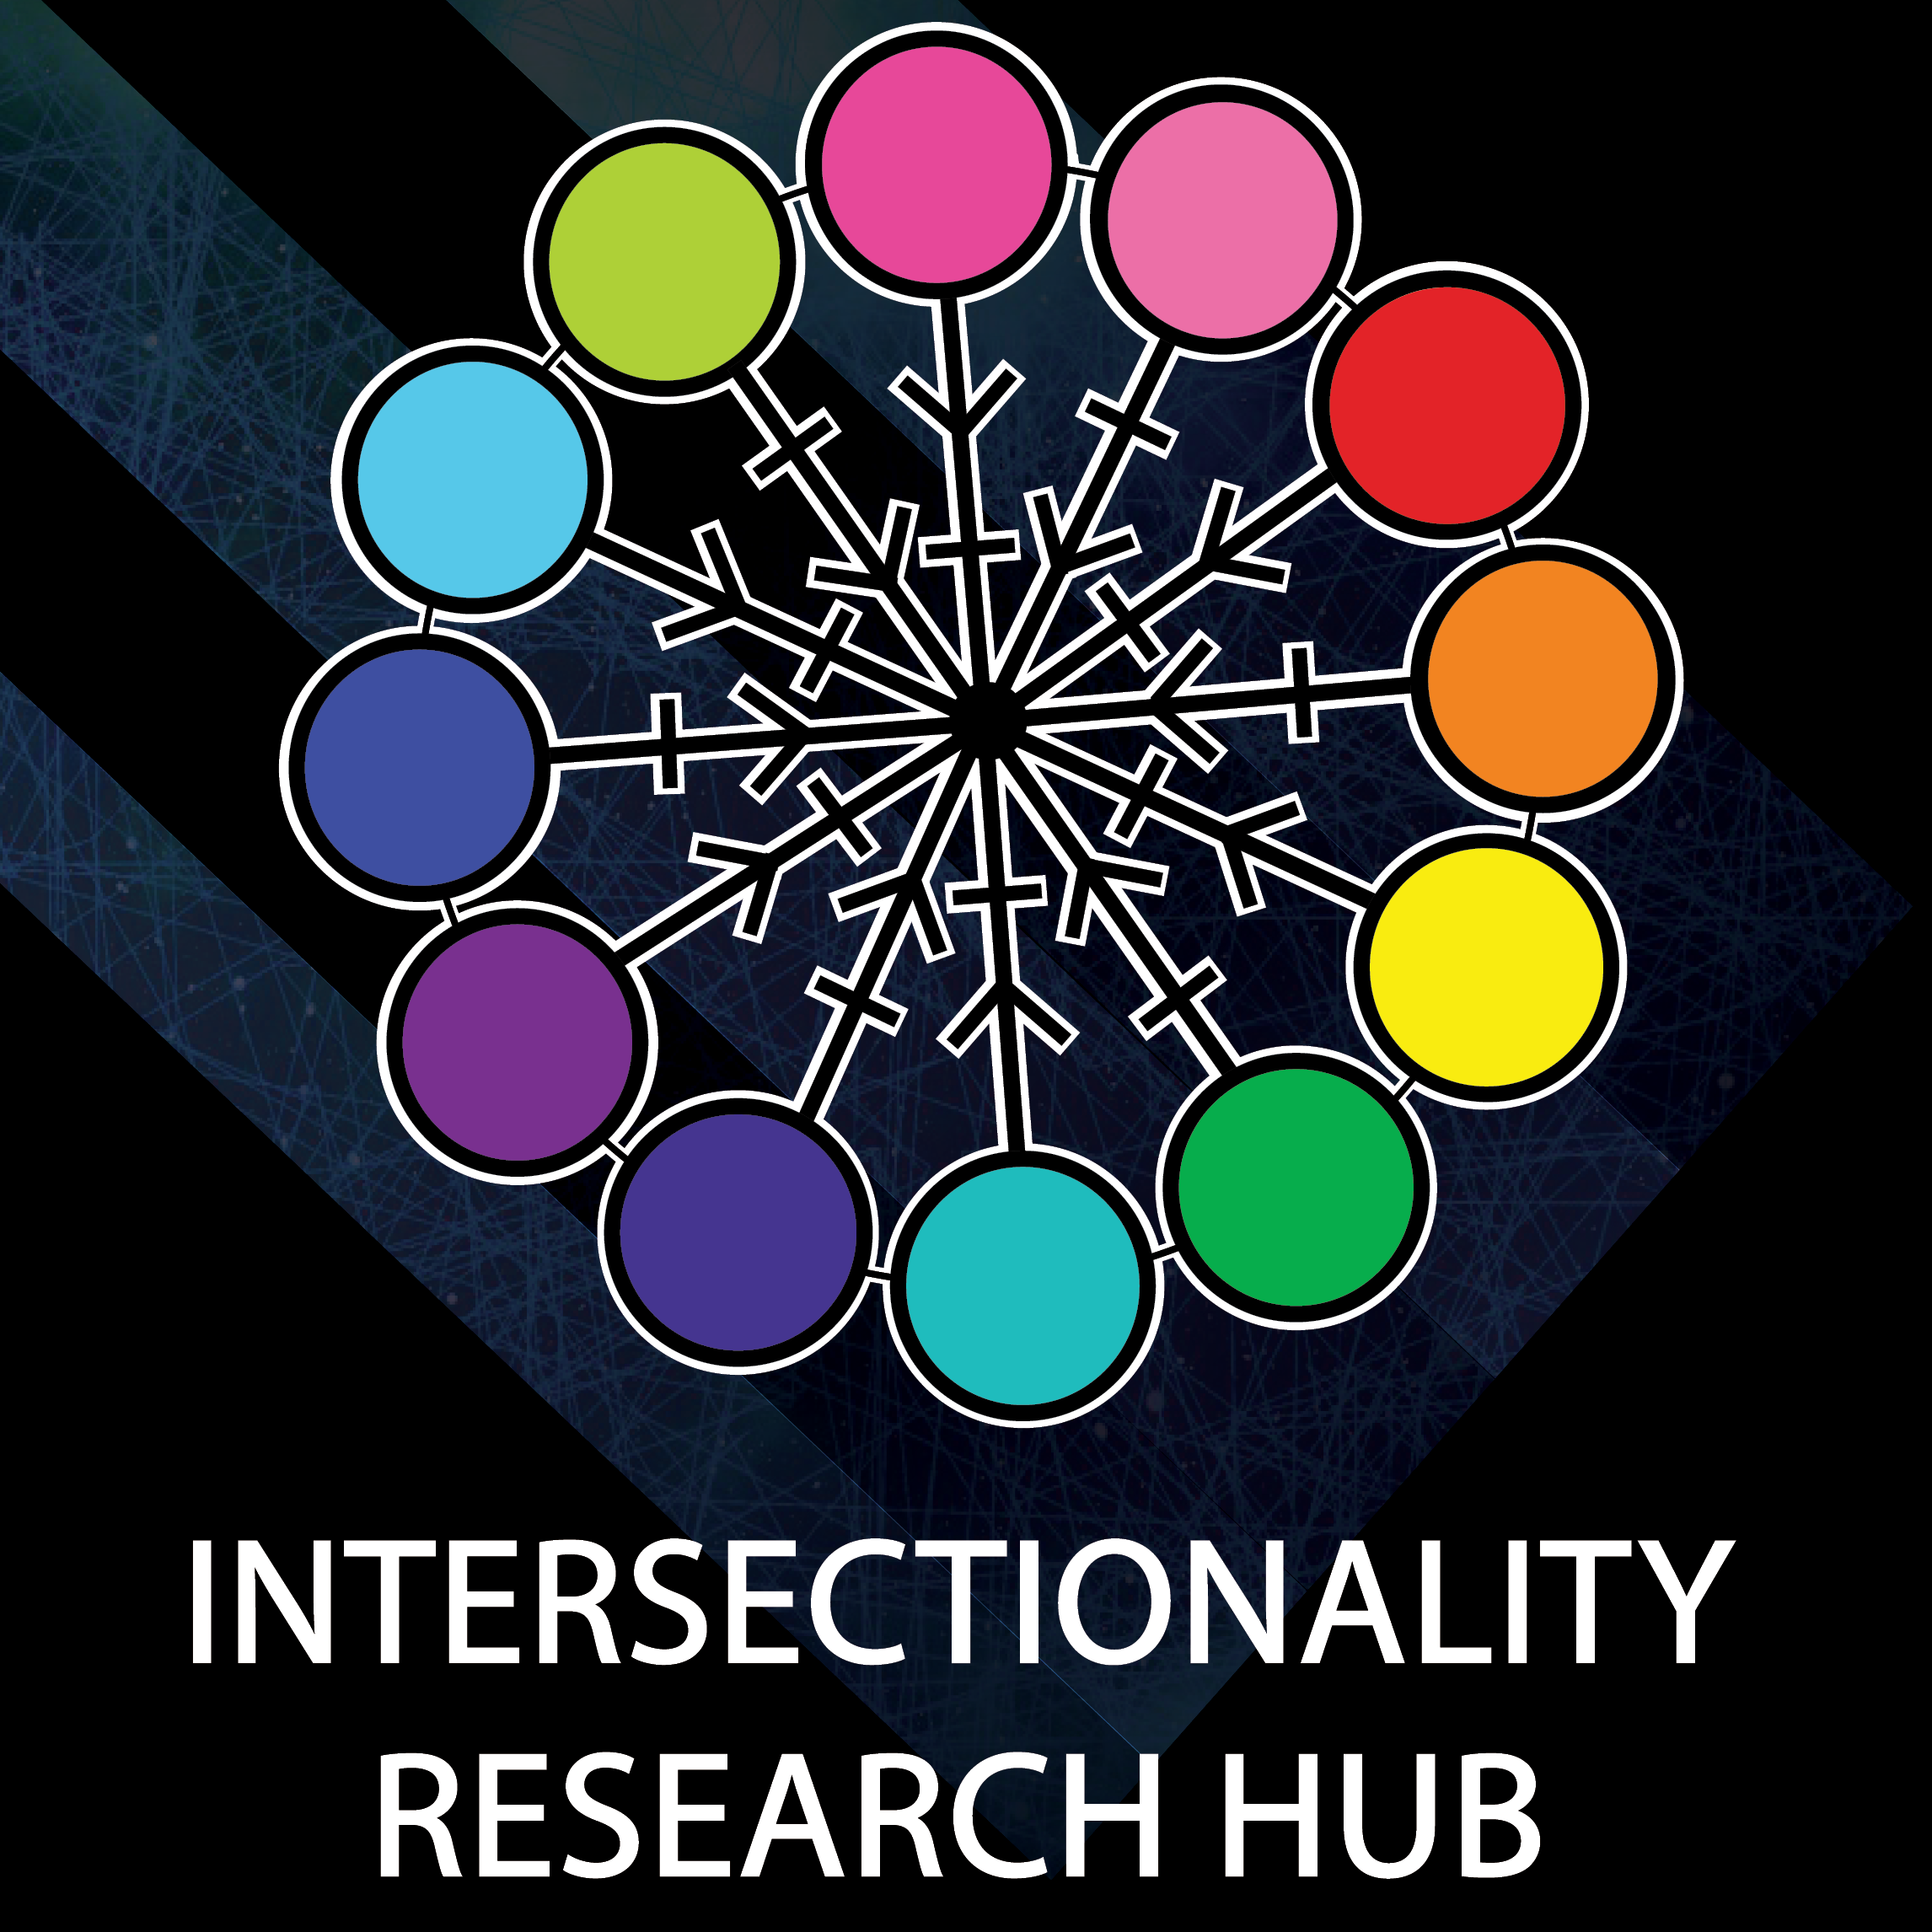 Intersectionality Research Hub